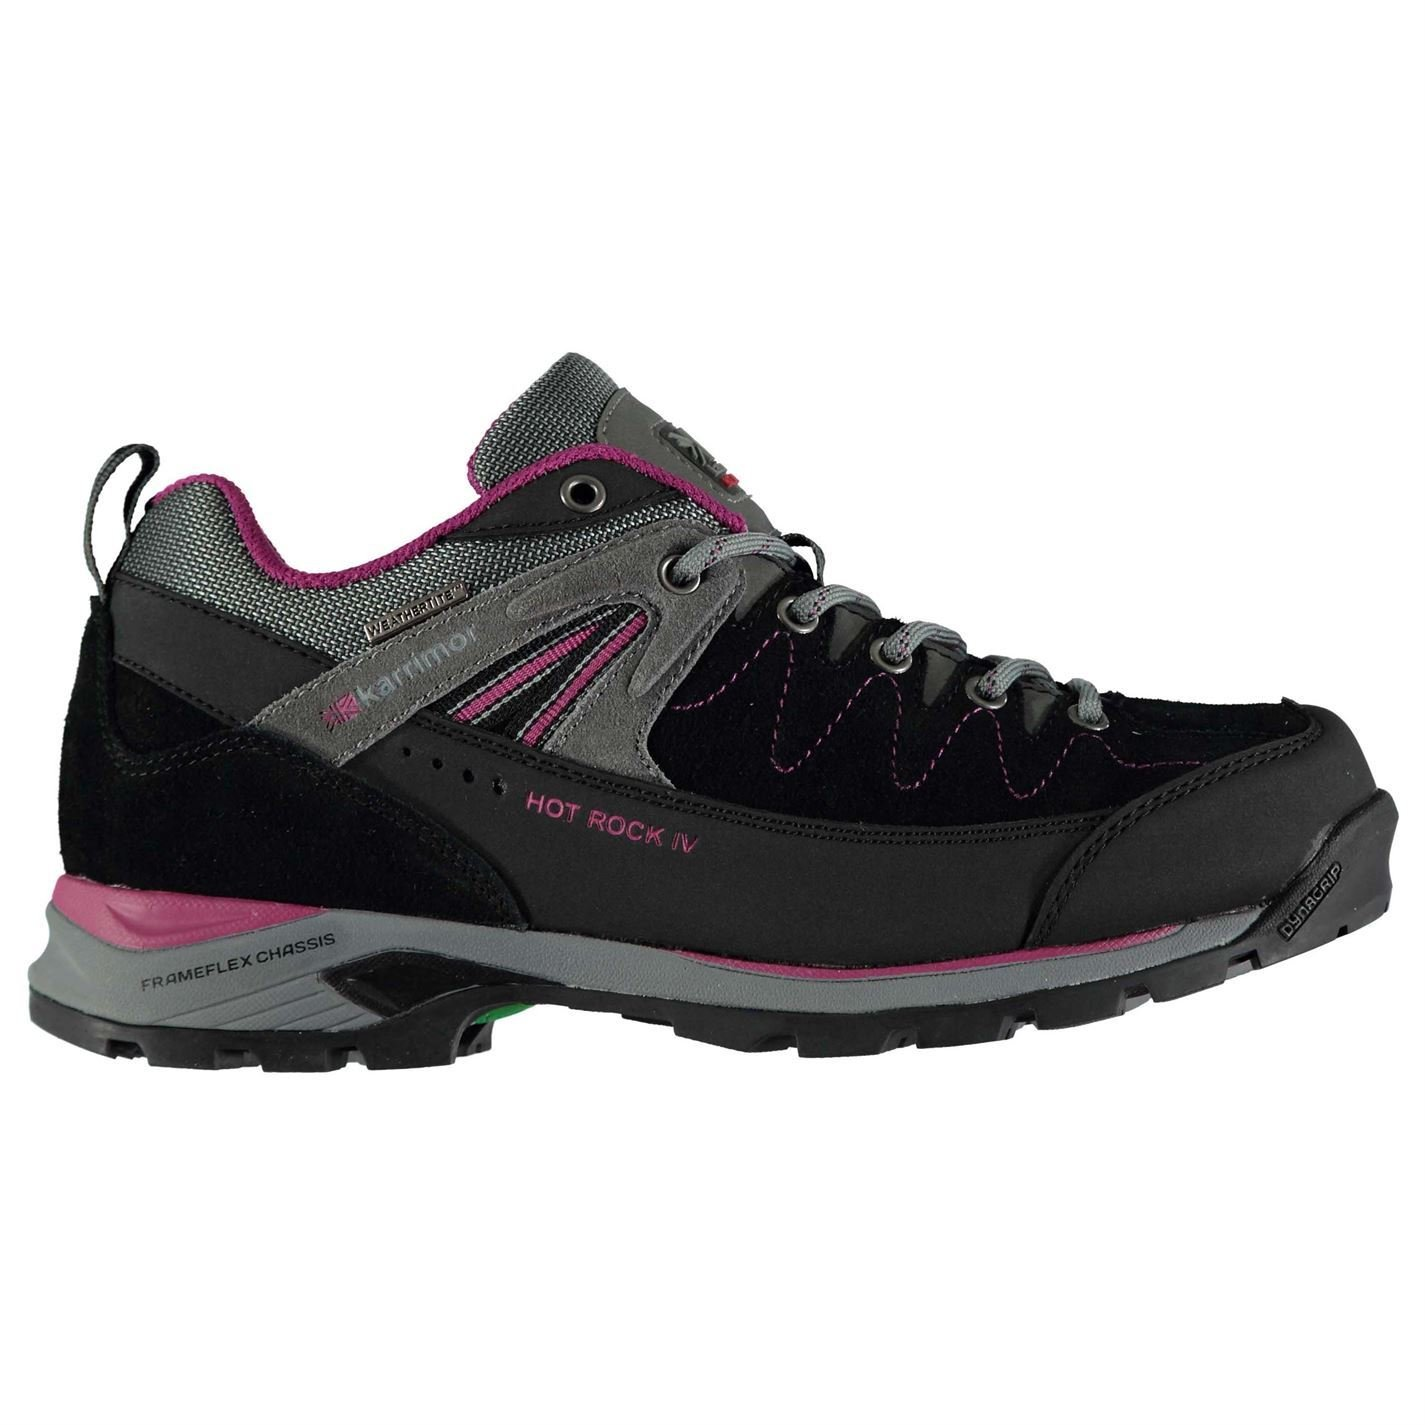 Karrimor Womens Hot Rock Low Walking Shoes Lace up Padded B078WVL53Q UK 7 (41)|Black/Pink